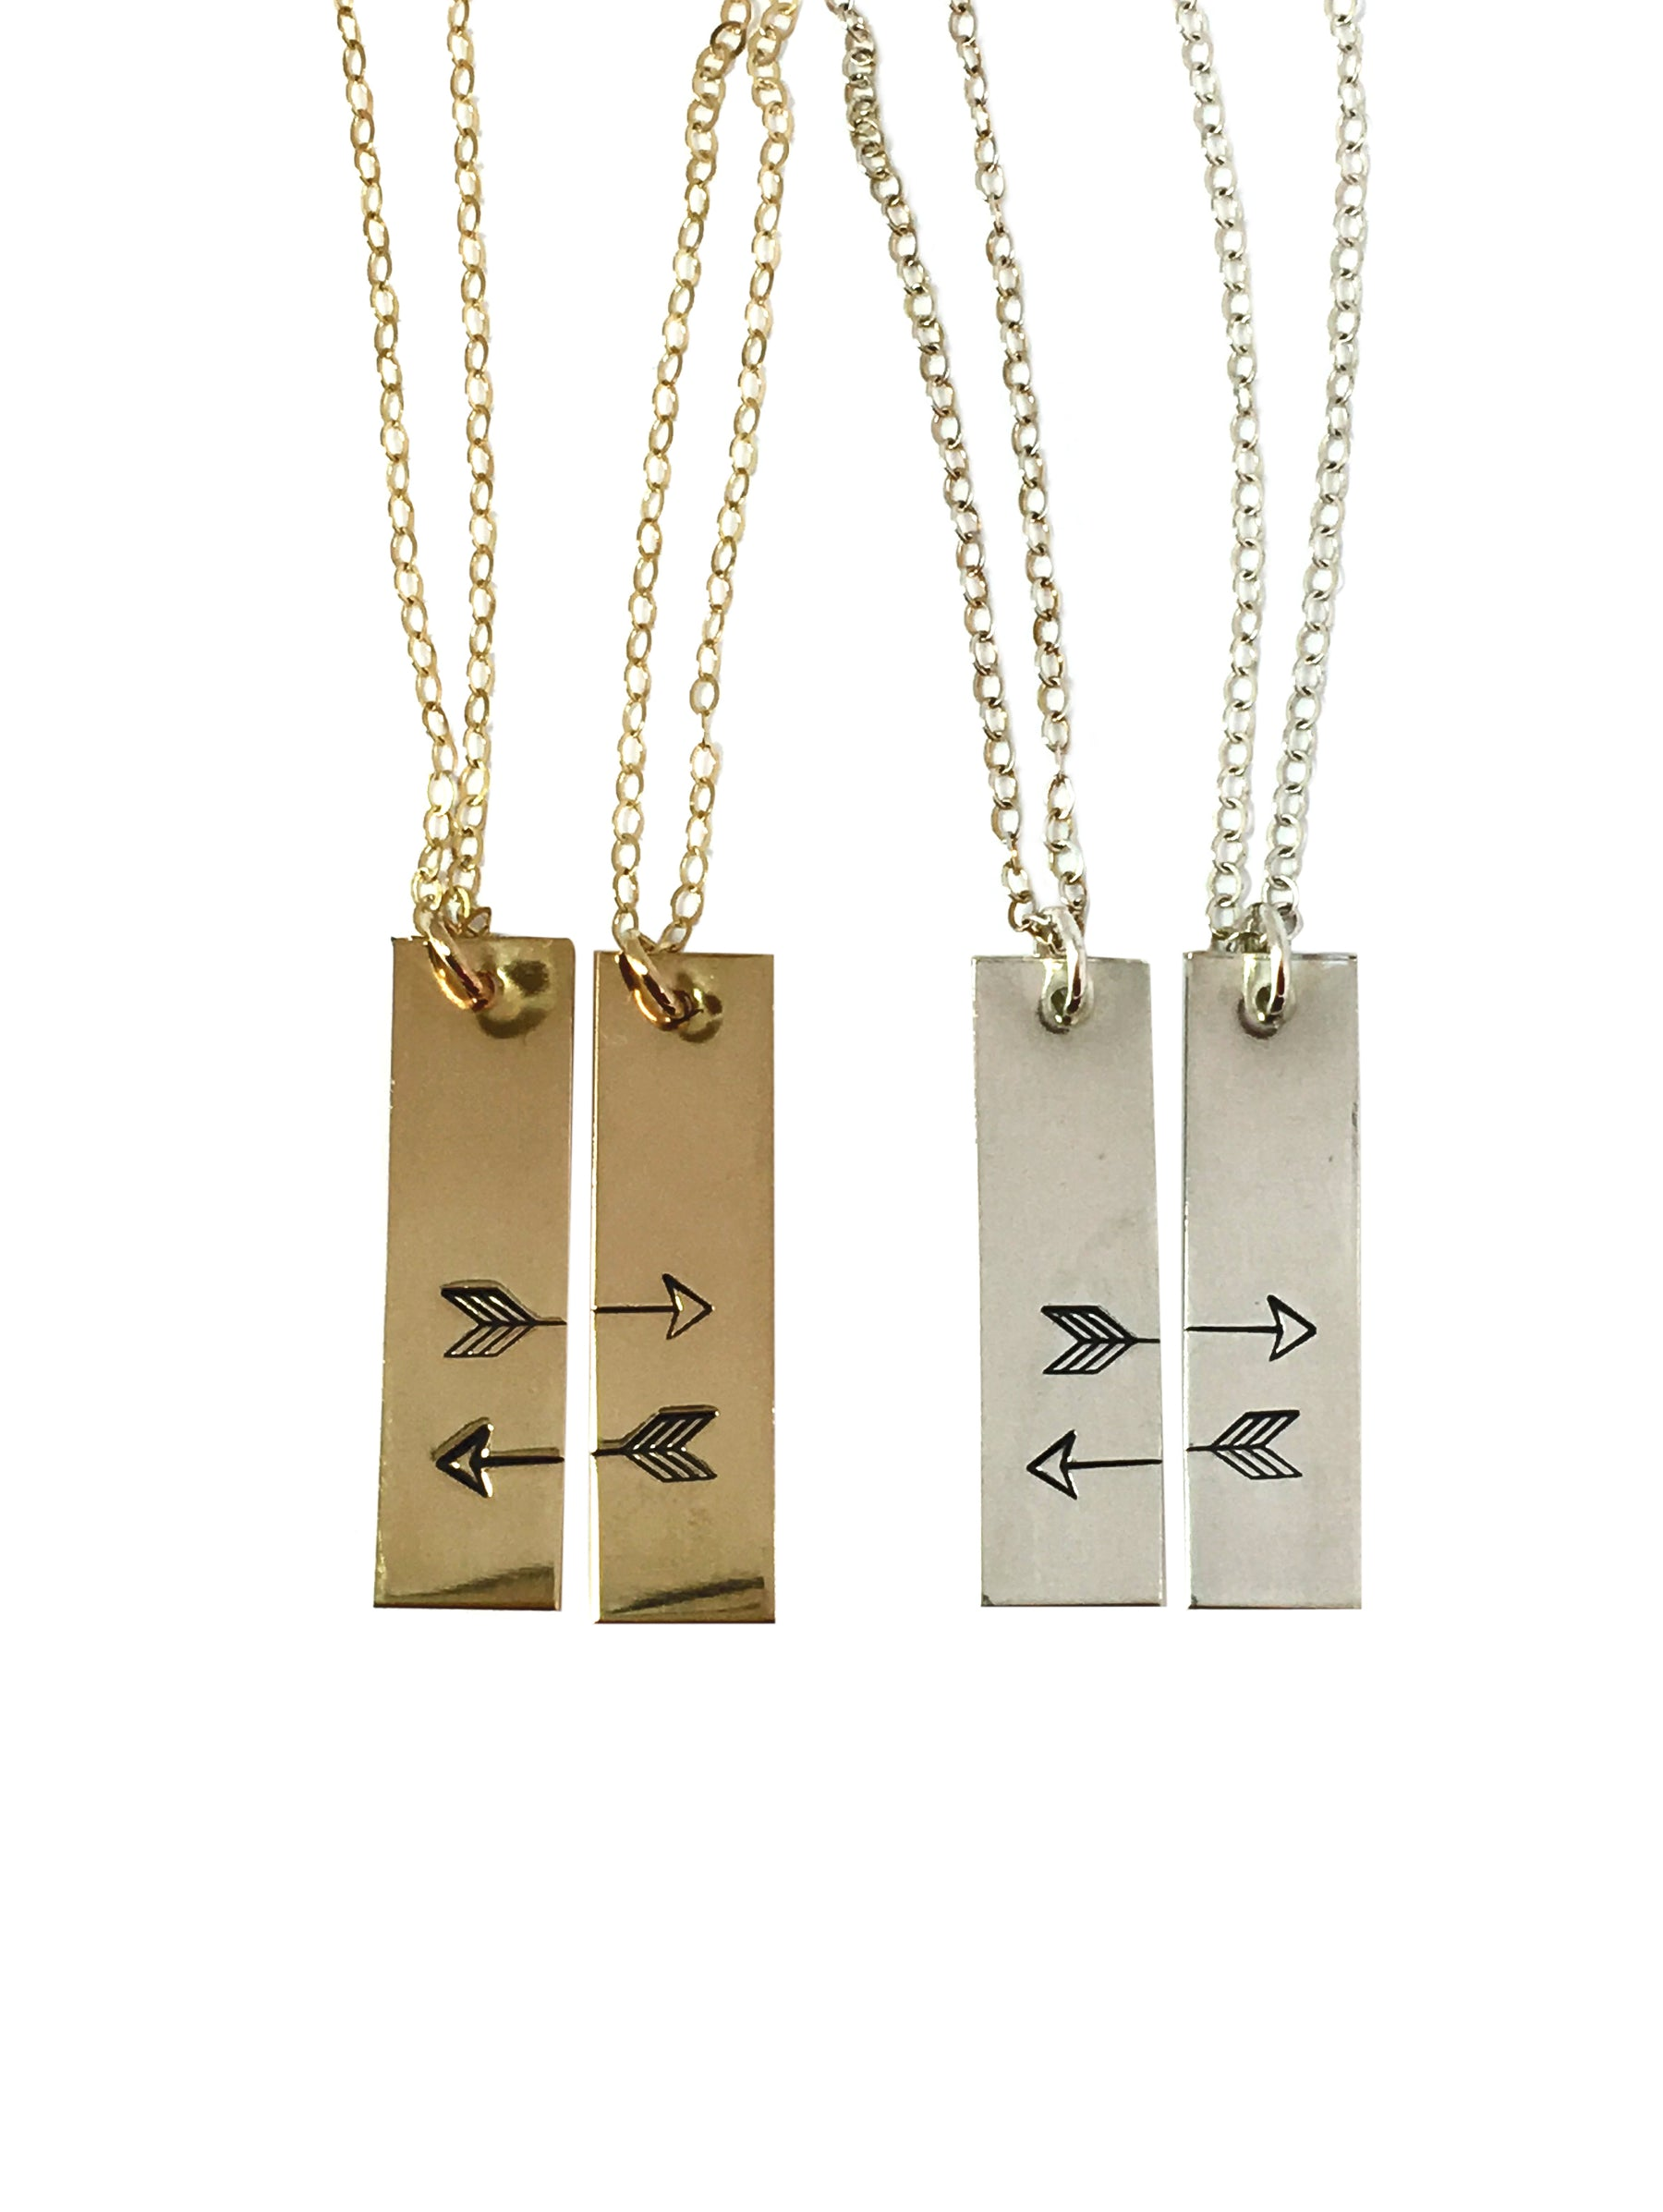 matching friend necklaces